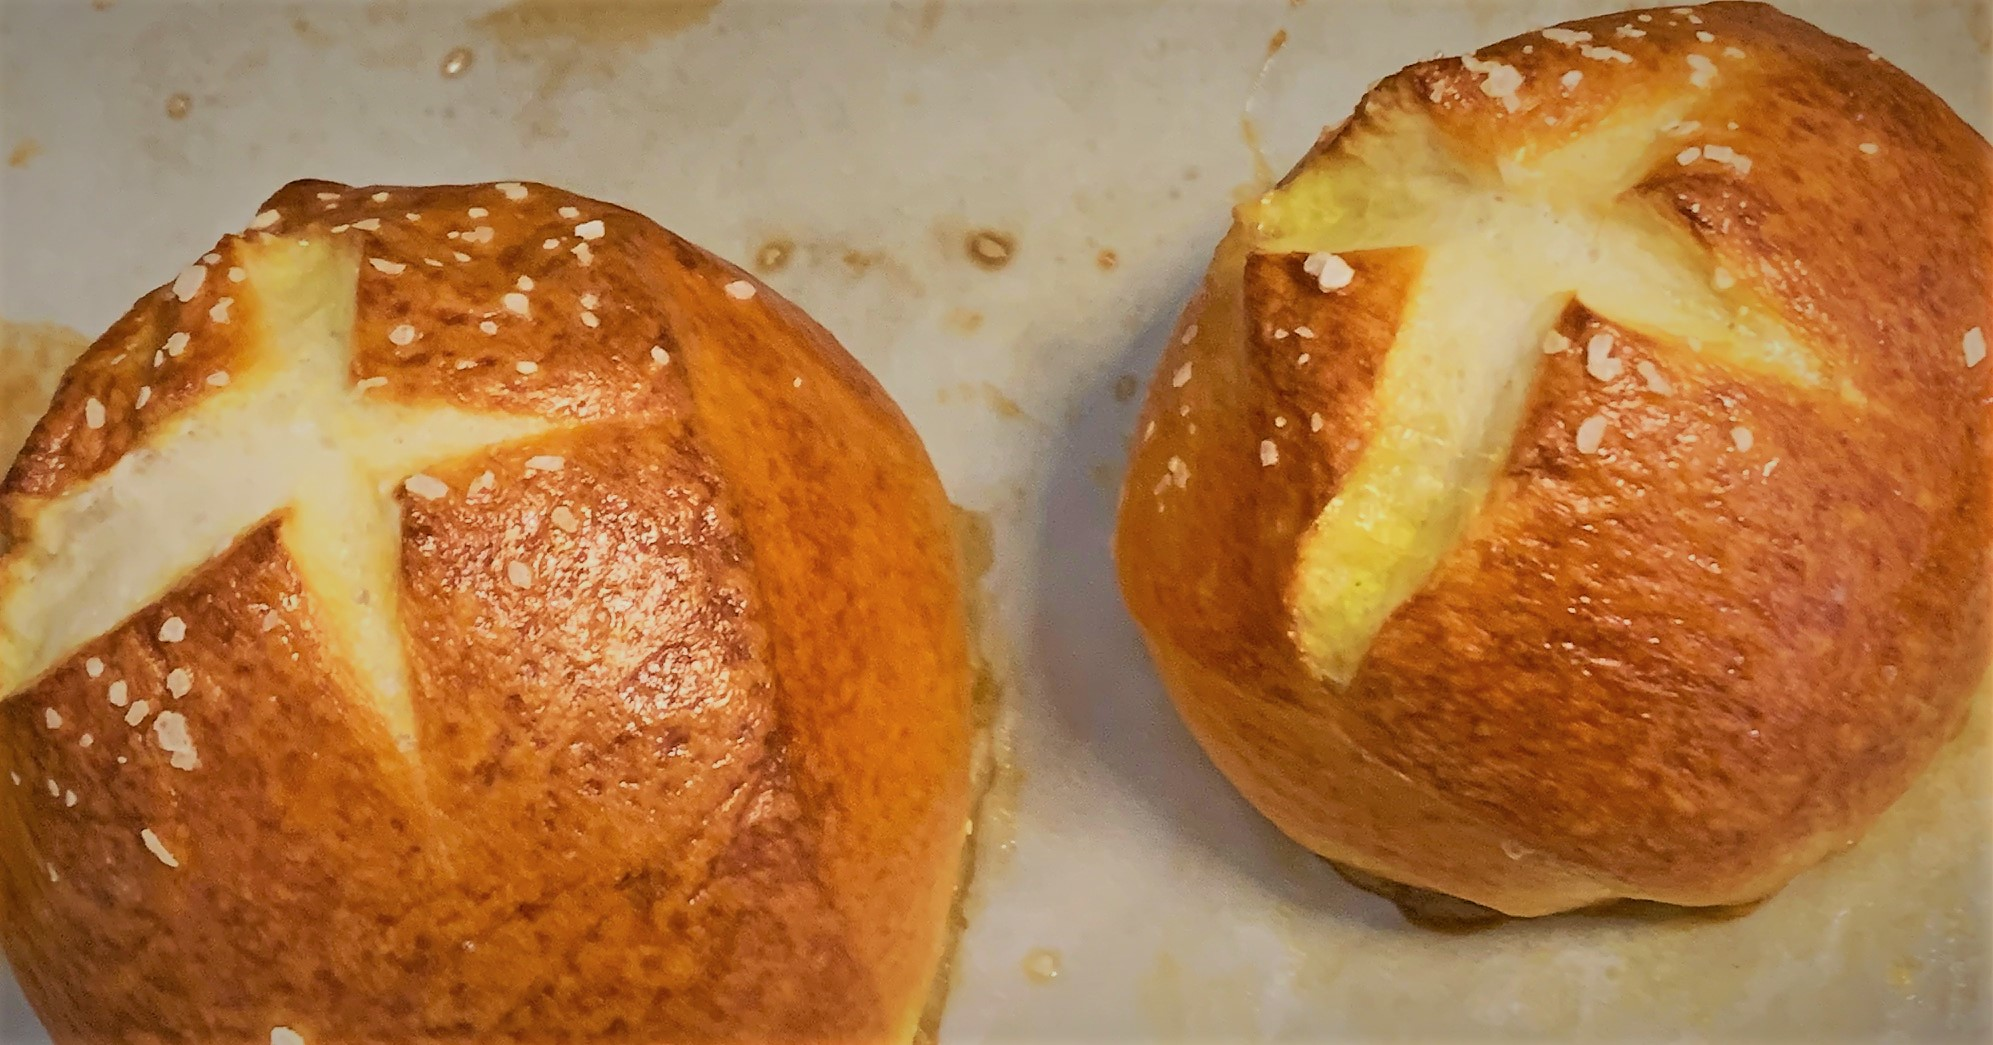 Our fully baked Rolls